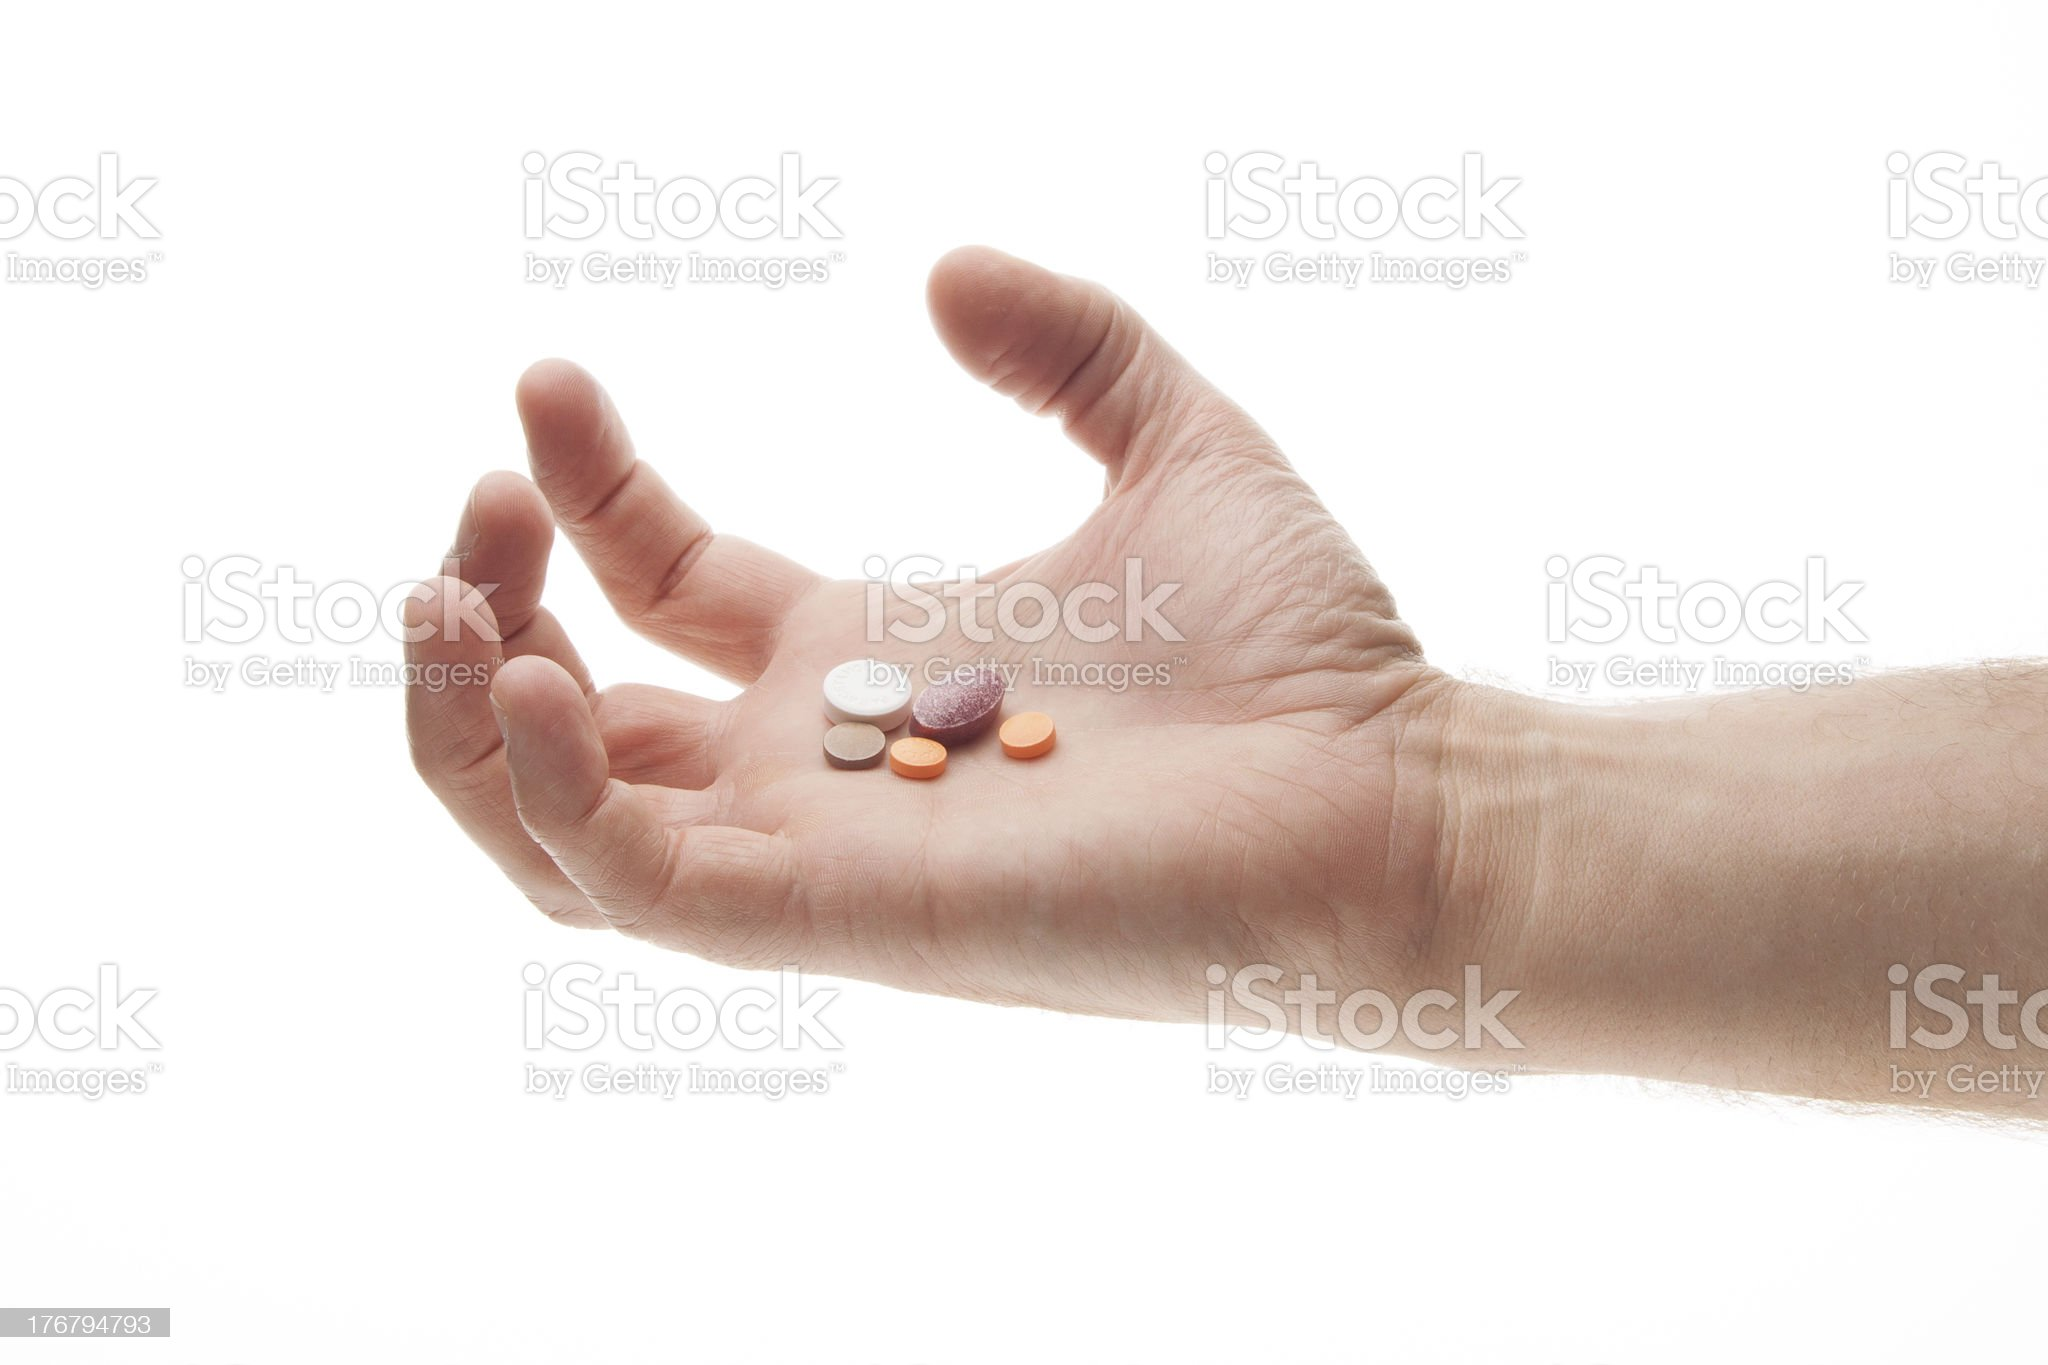 Hand holding pills in an angry or frustrated manner royalty-free stock photo